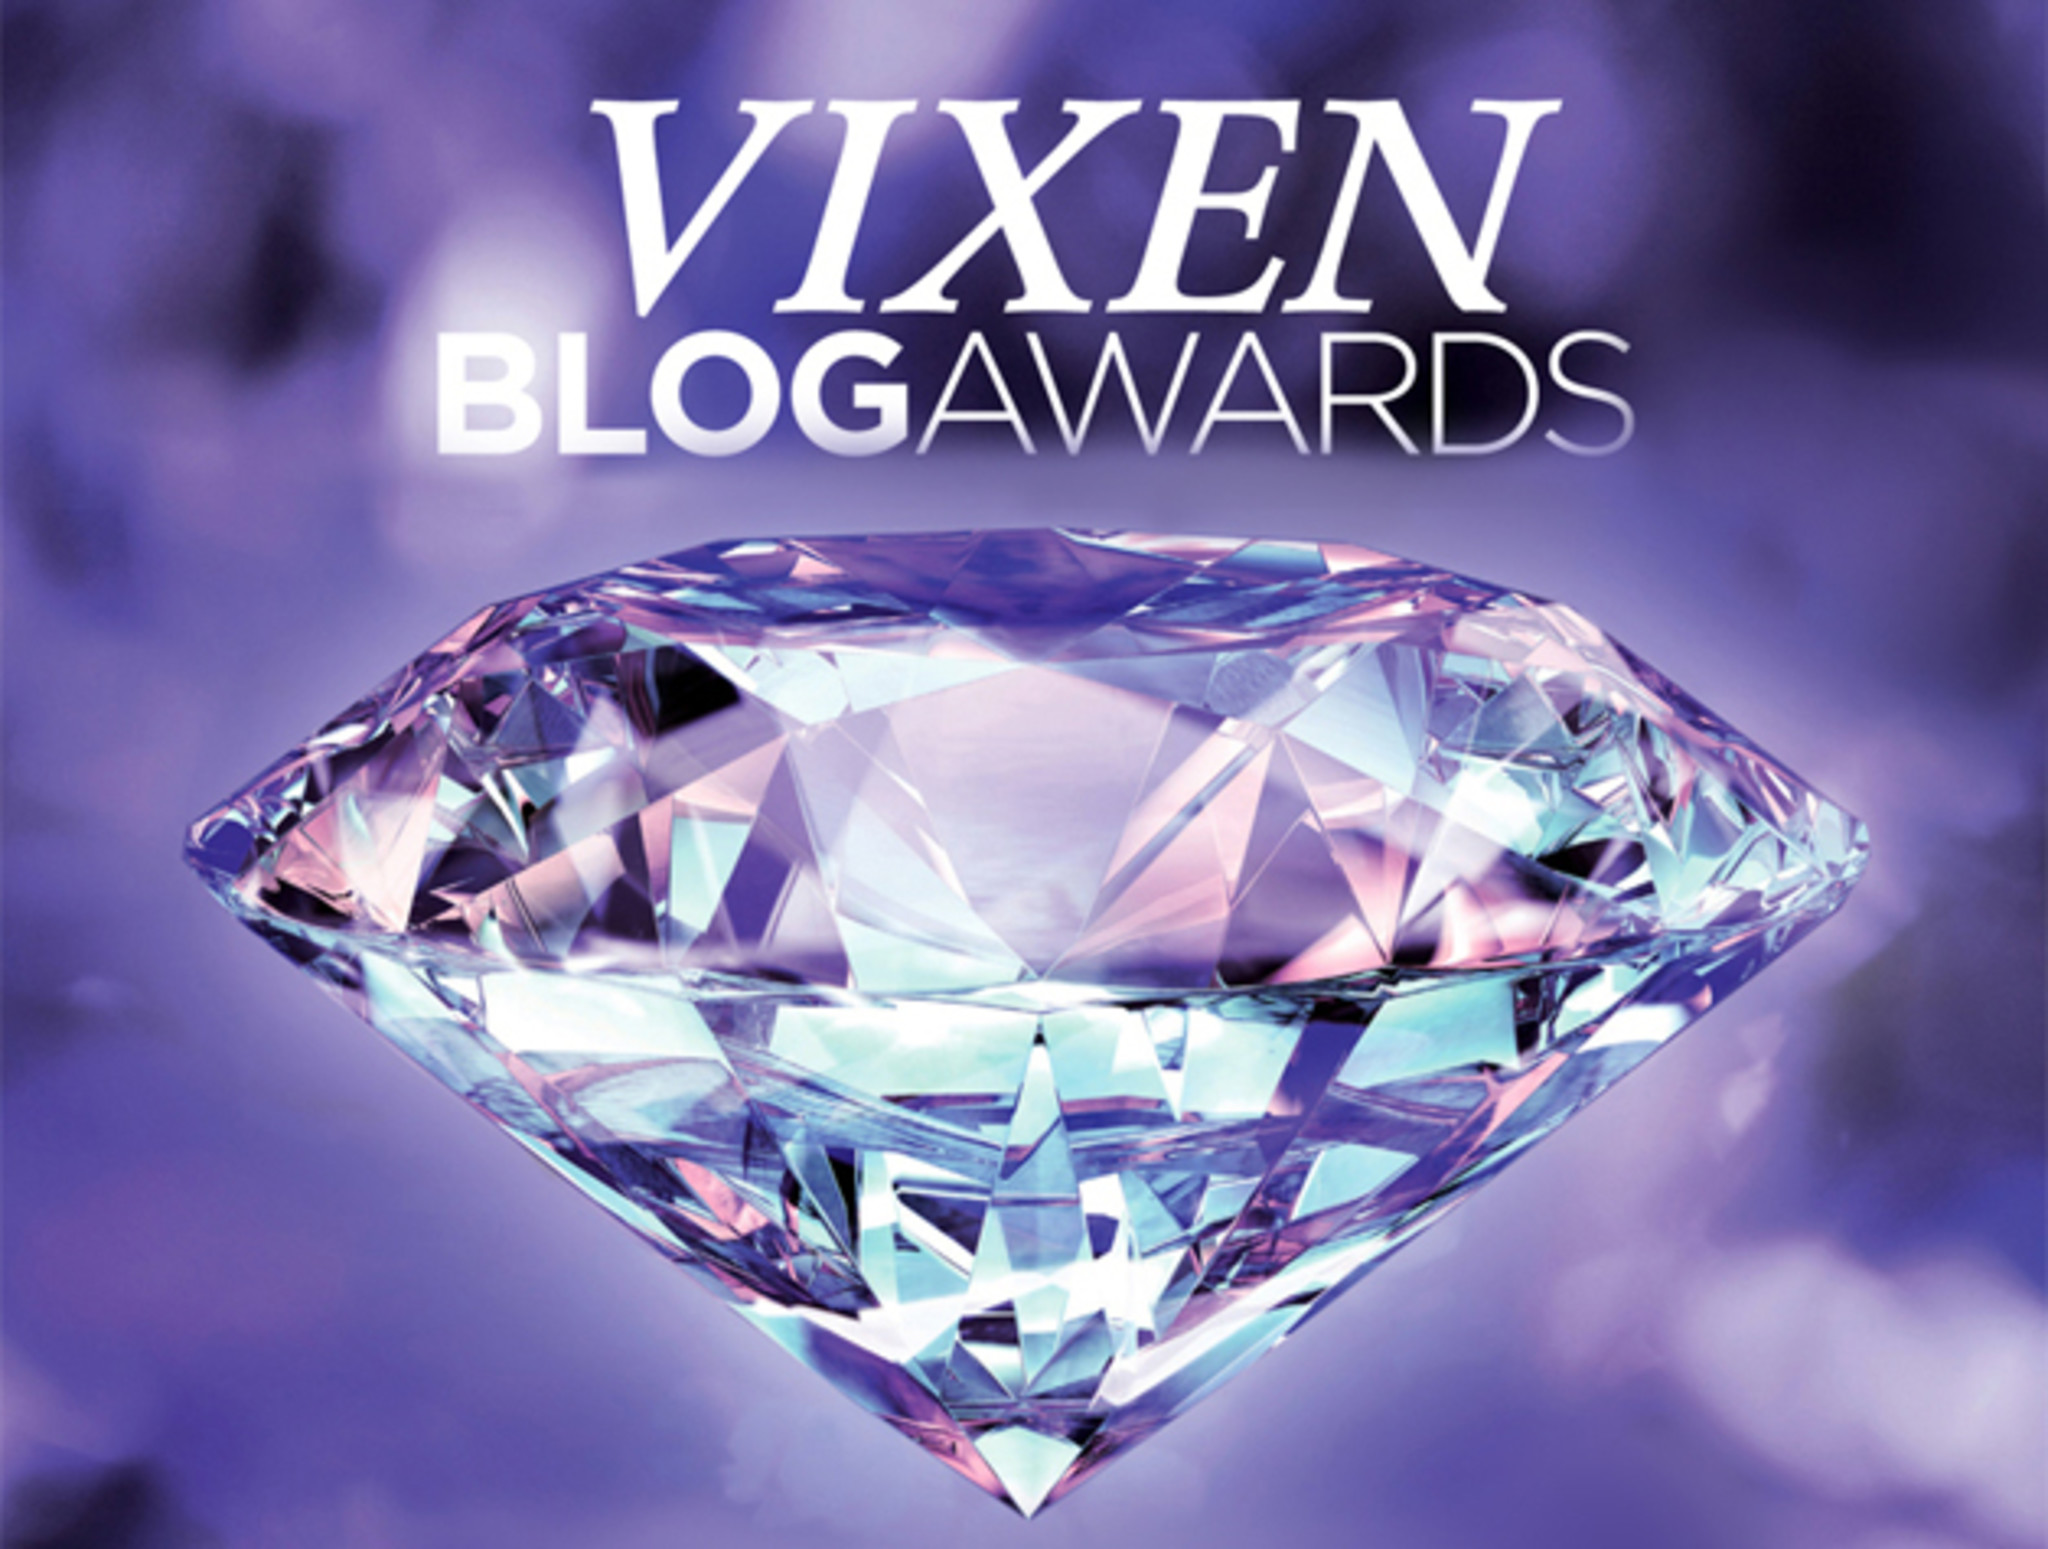 Vinn_Vixen_blog_awards_billetter_xs-1